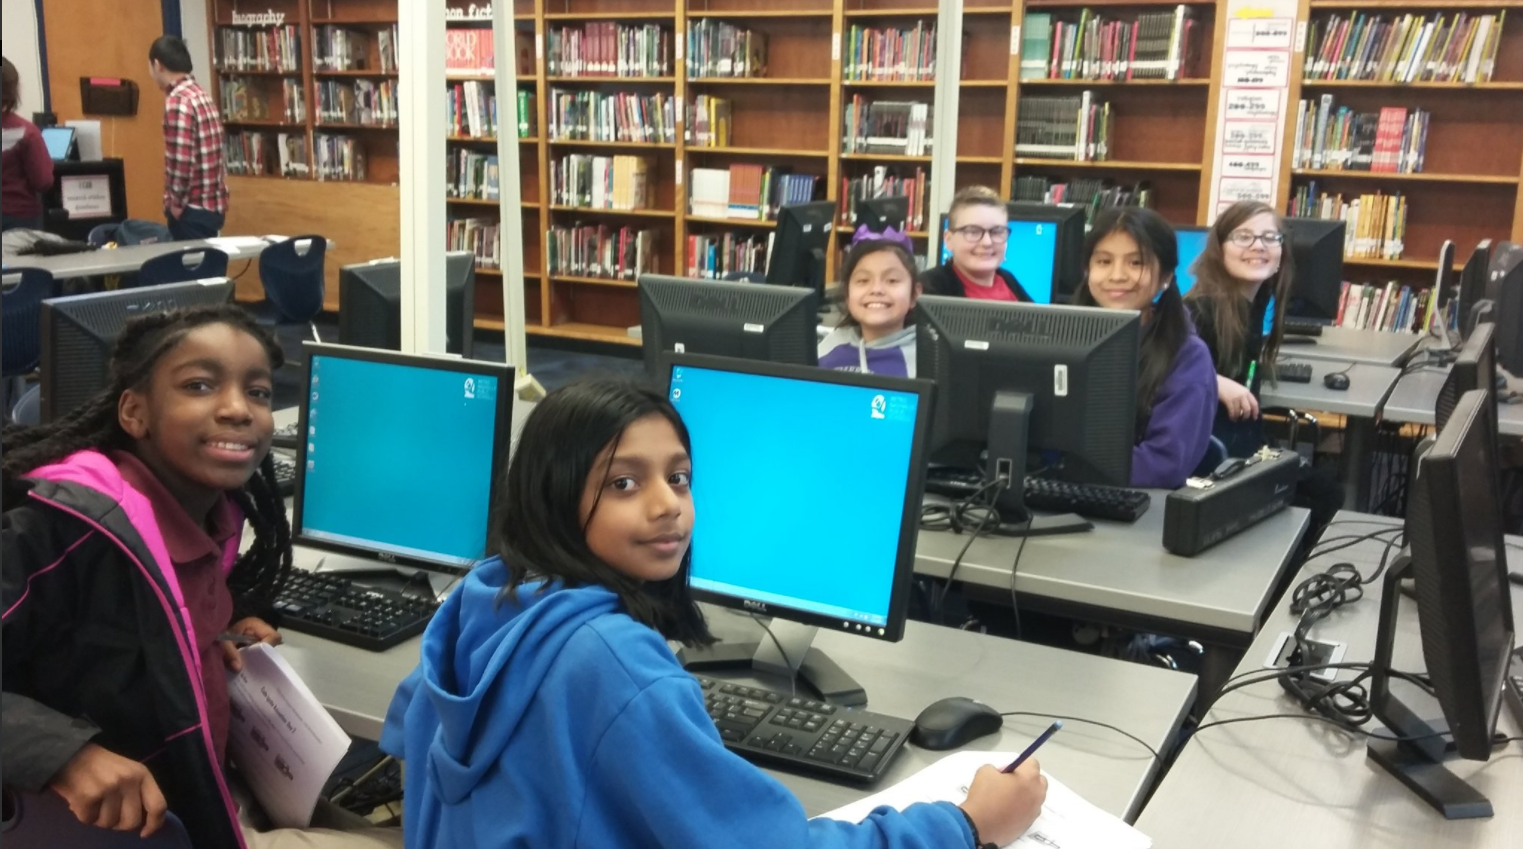 Code Ignite at Rose Park Middle School during the Spring 2017 semester